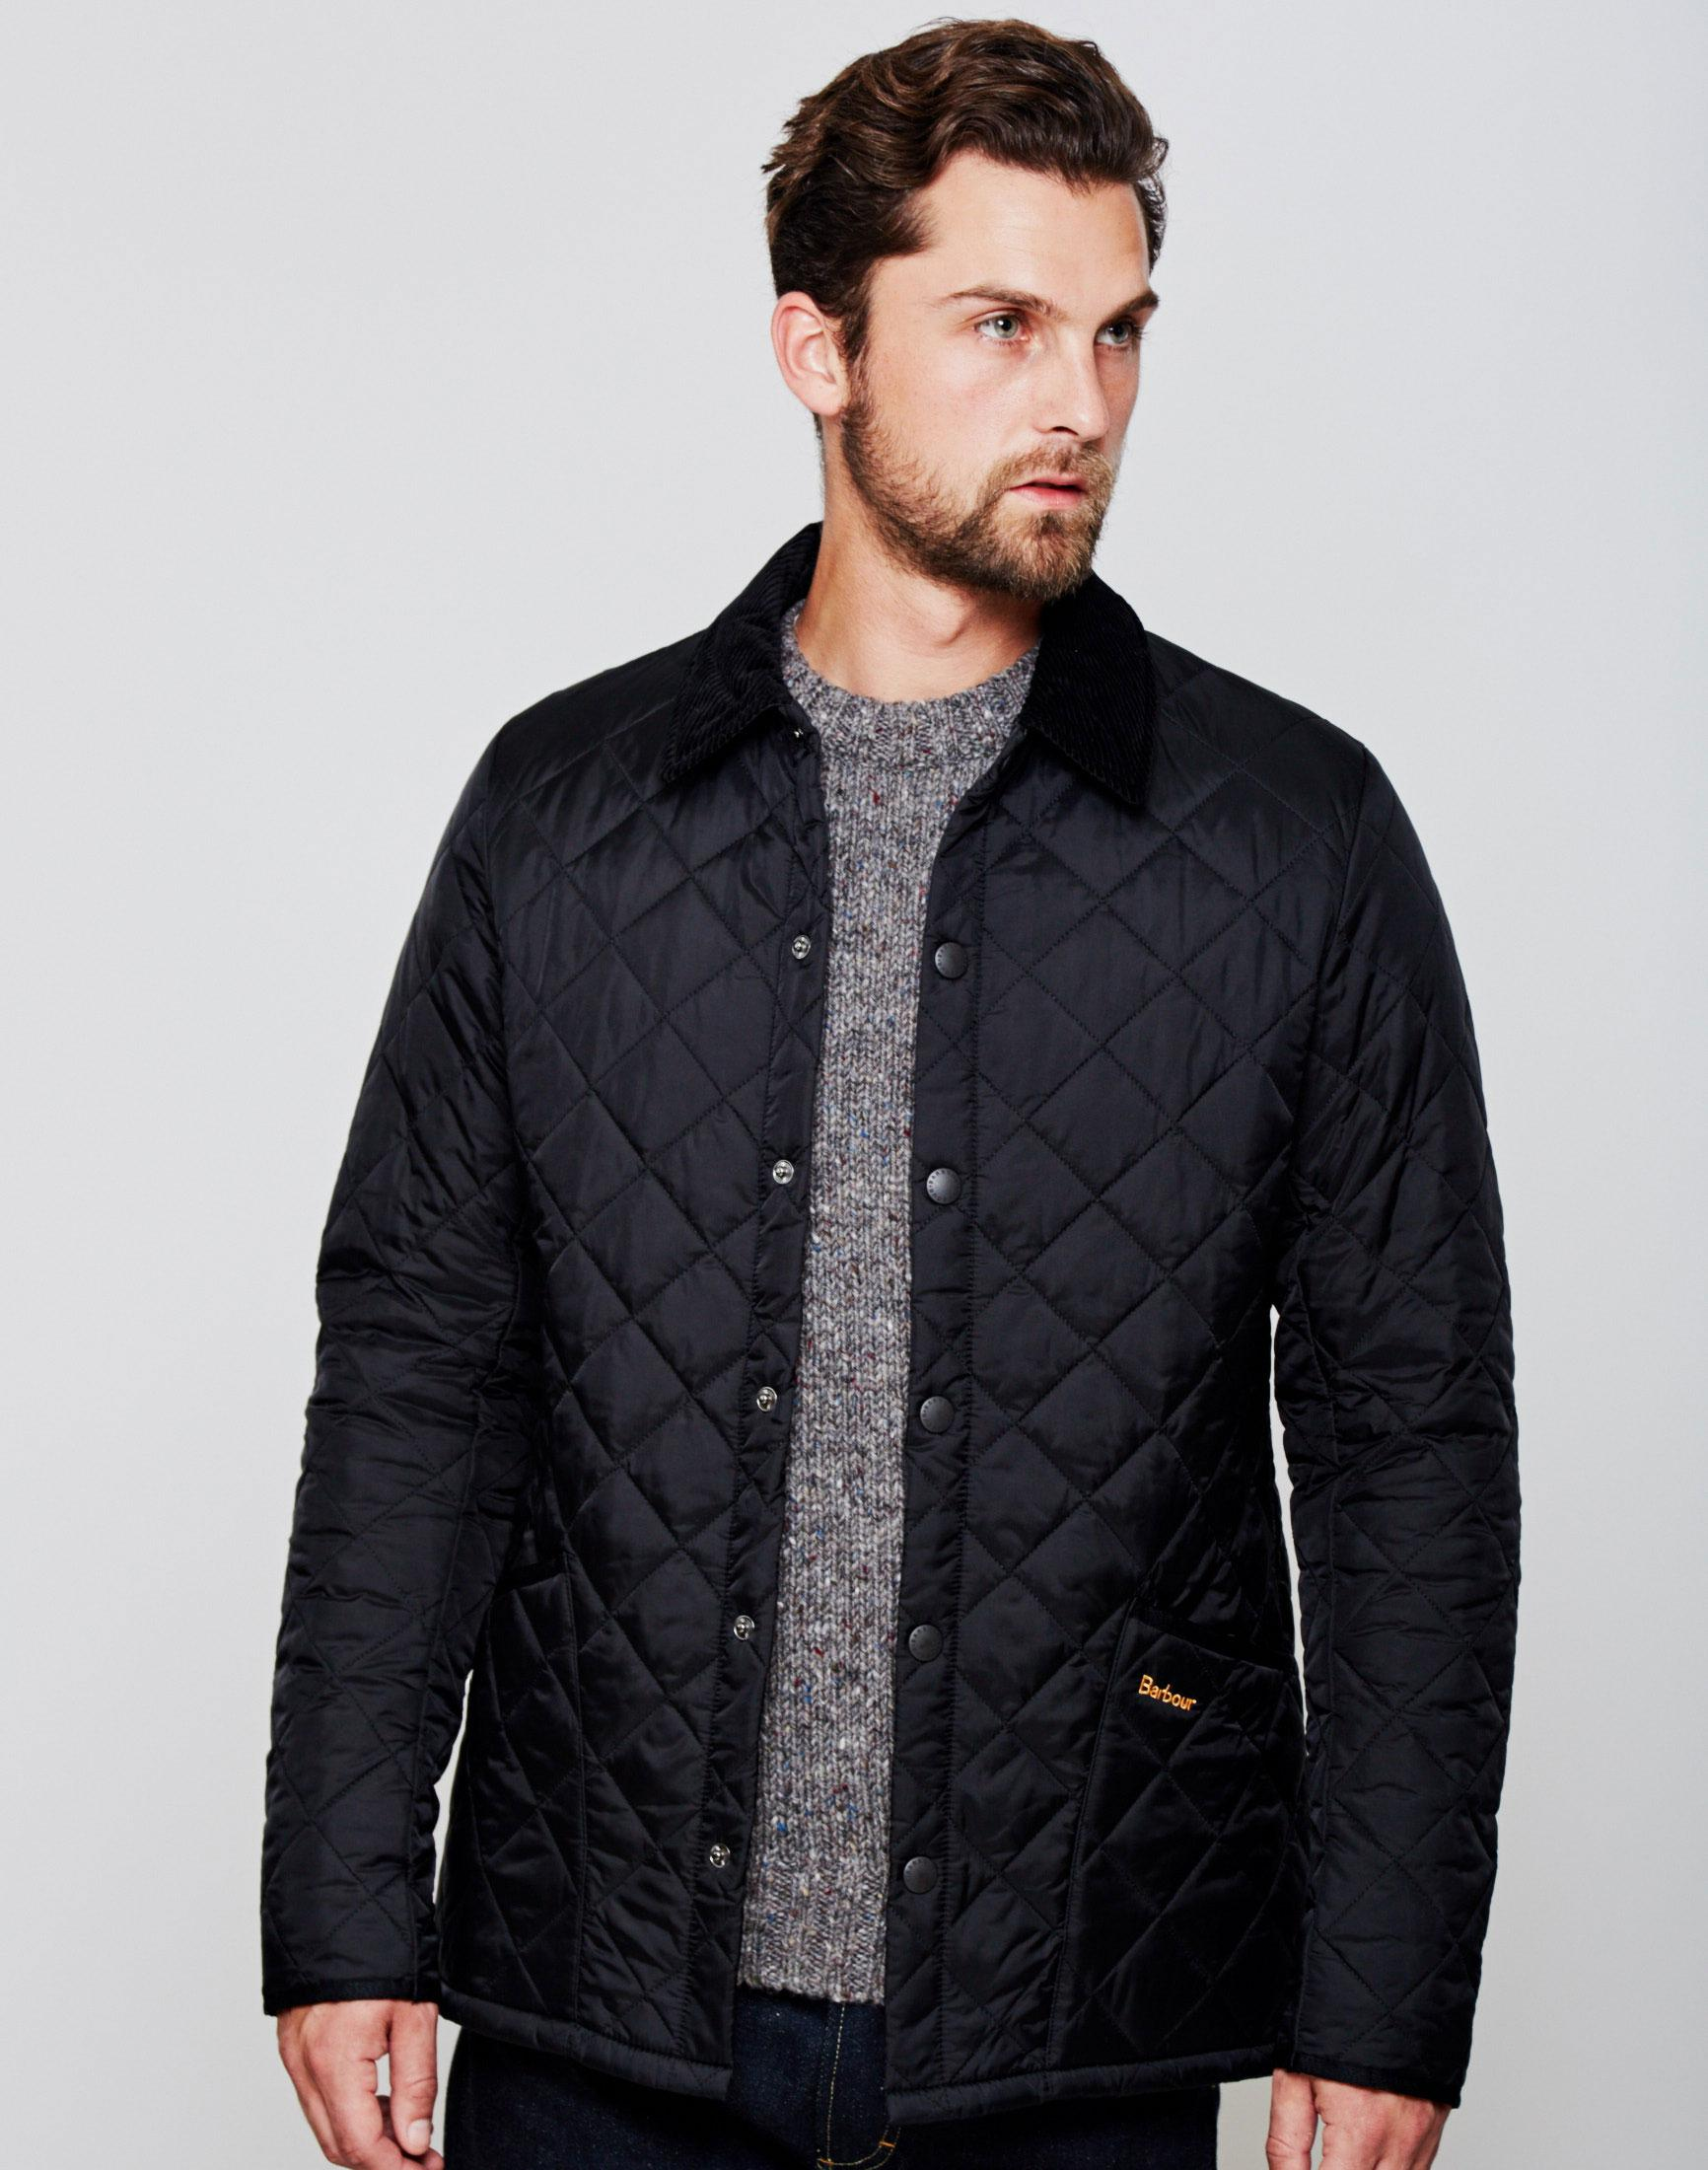 62d45d1a4d8ae Lyst - Barbour Heritage Liddesdale Quilted Jacket Black in Black for Men